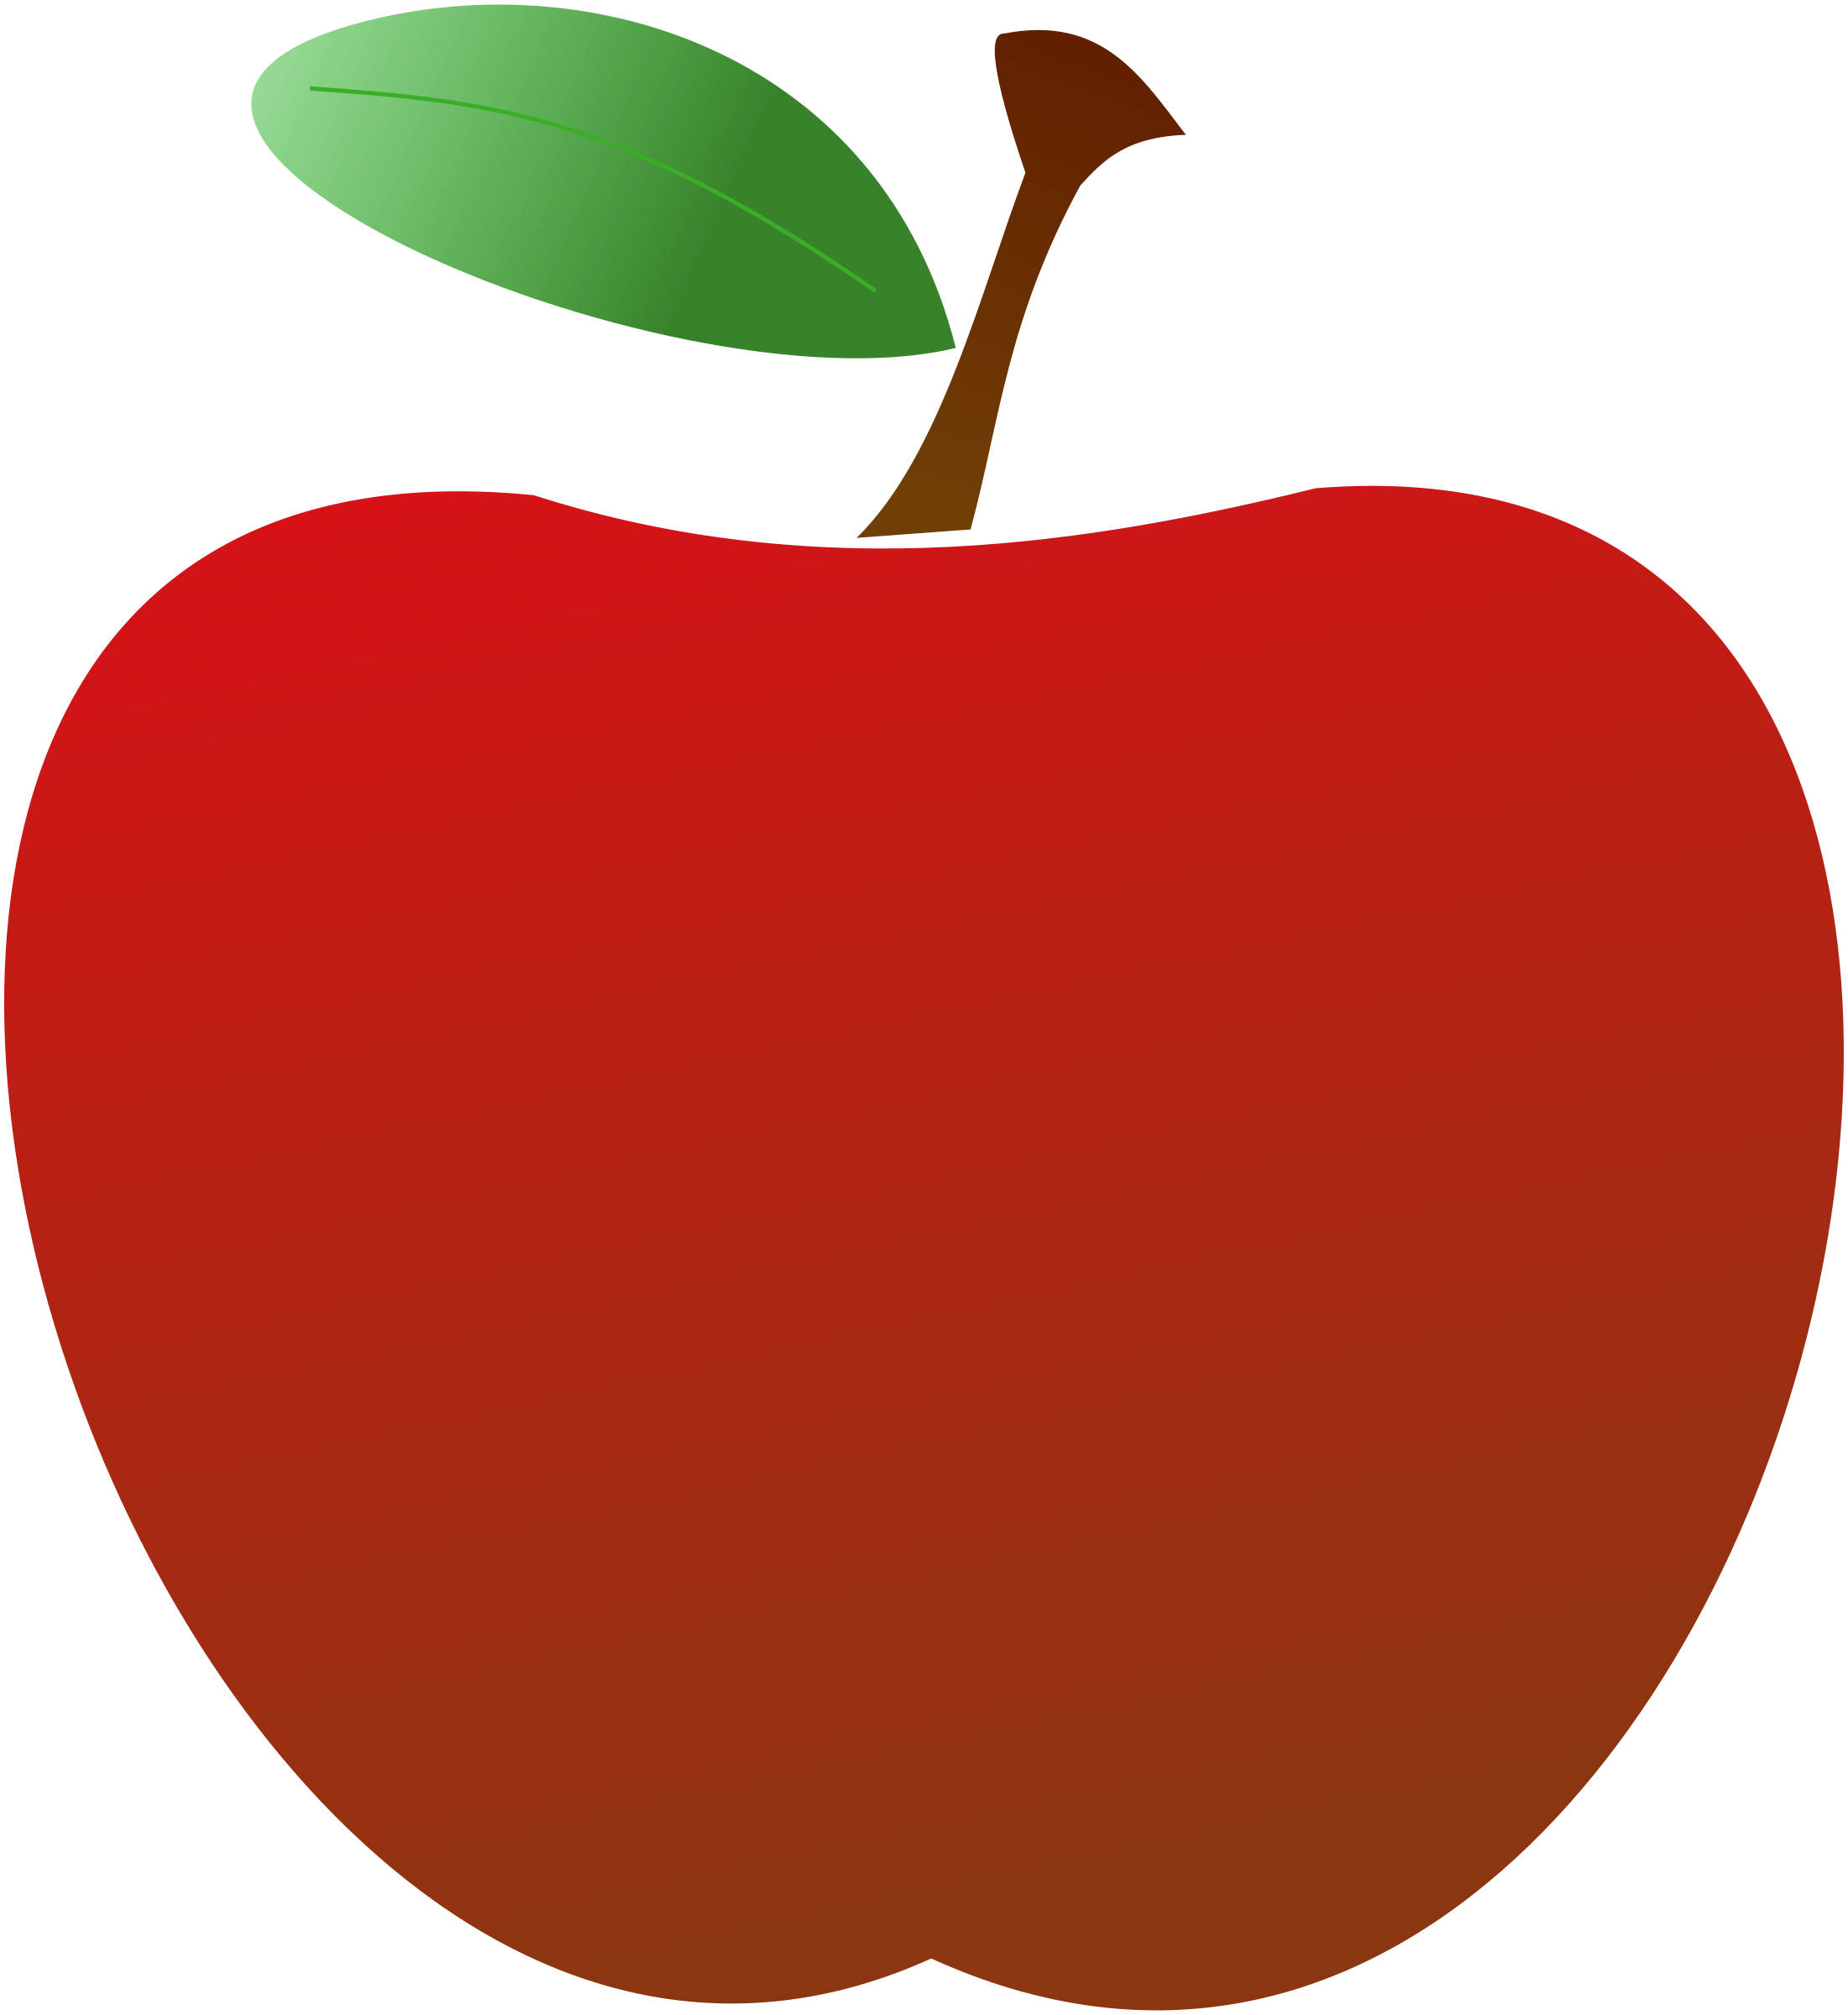 Leaf clipart apple tree. Teacher panda free images